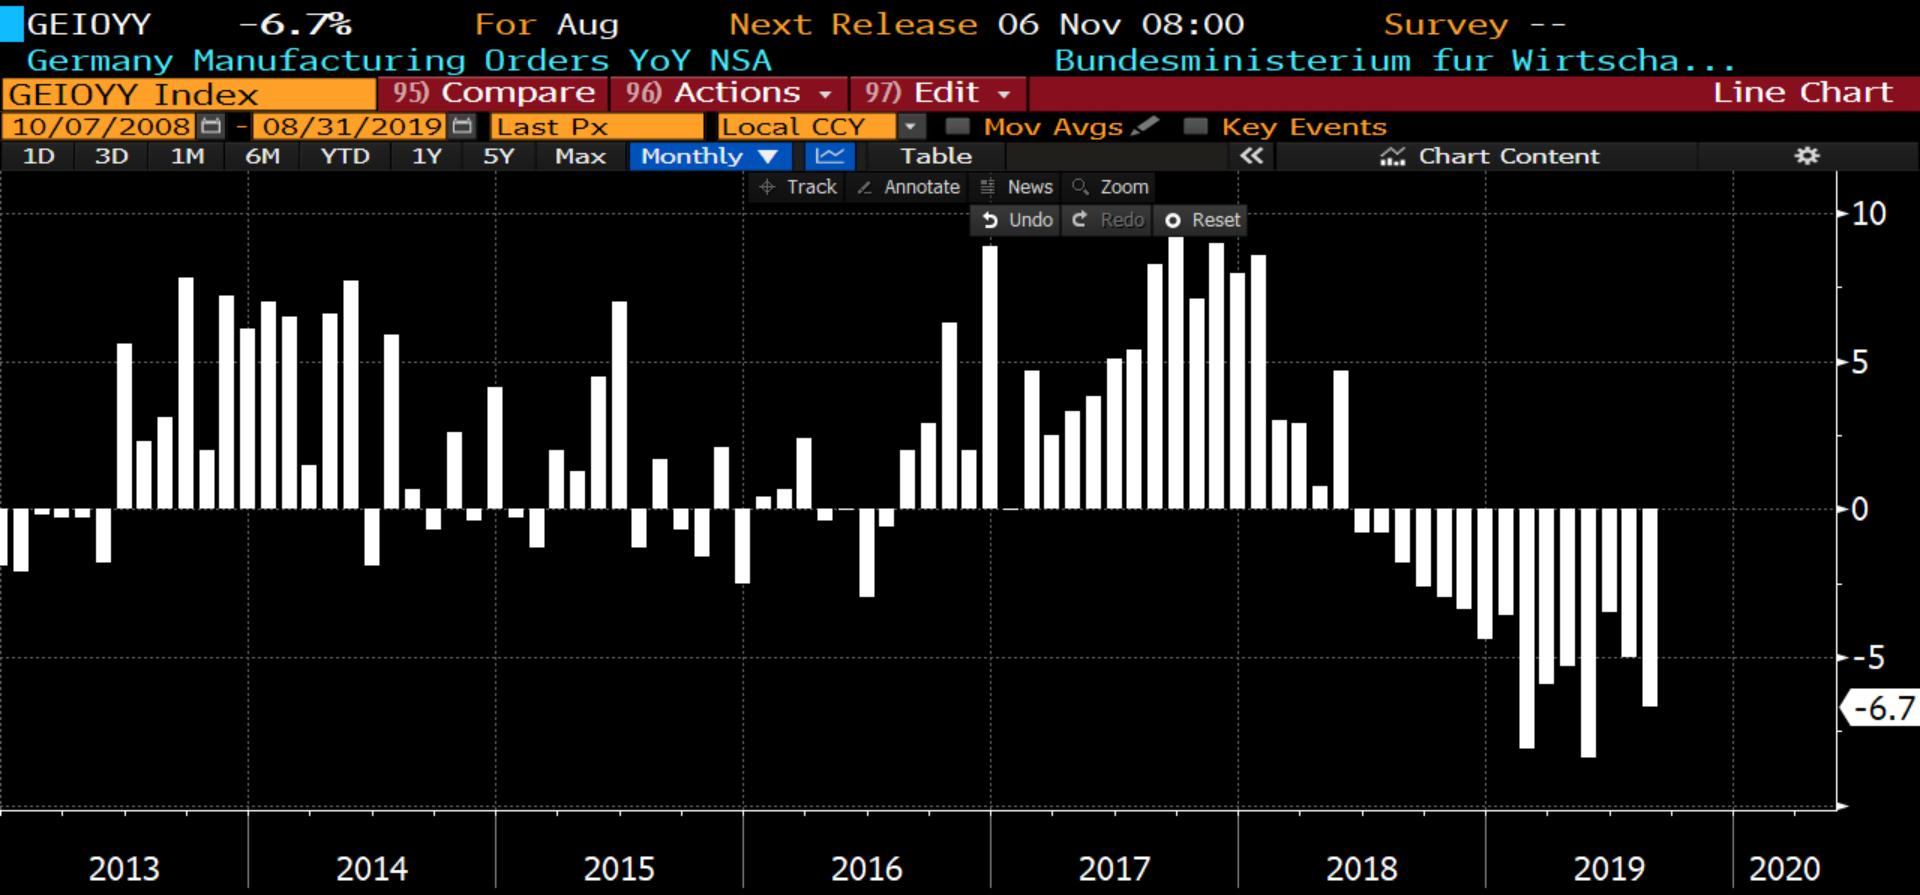 germany-manufacturing-orders-yoy-2019-10-07